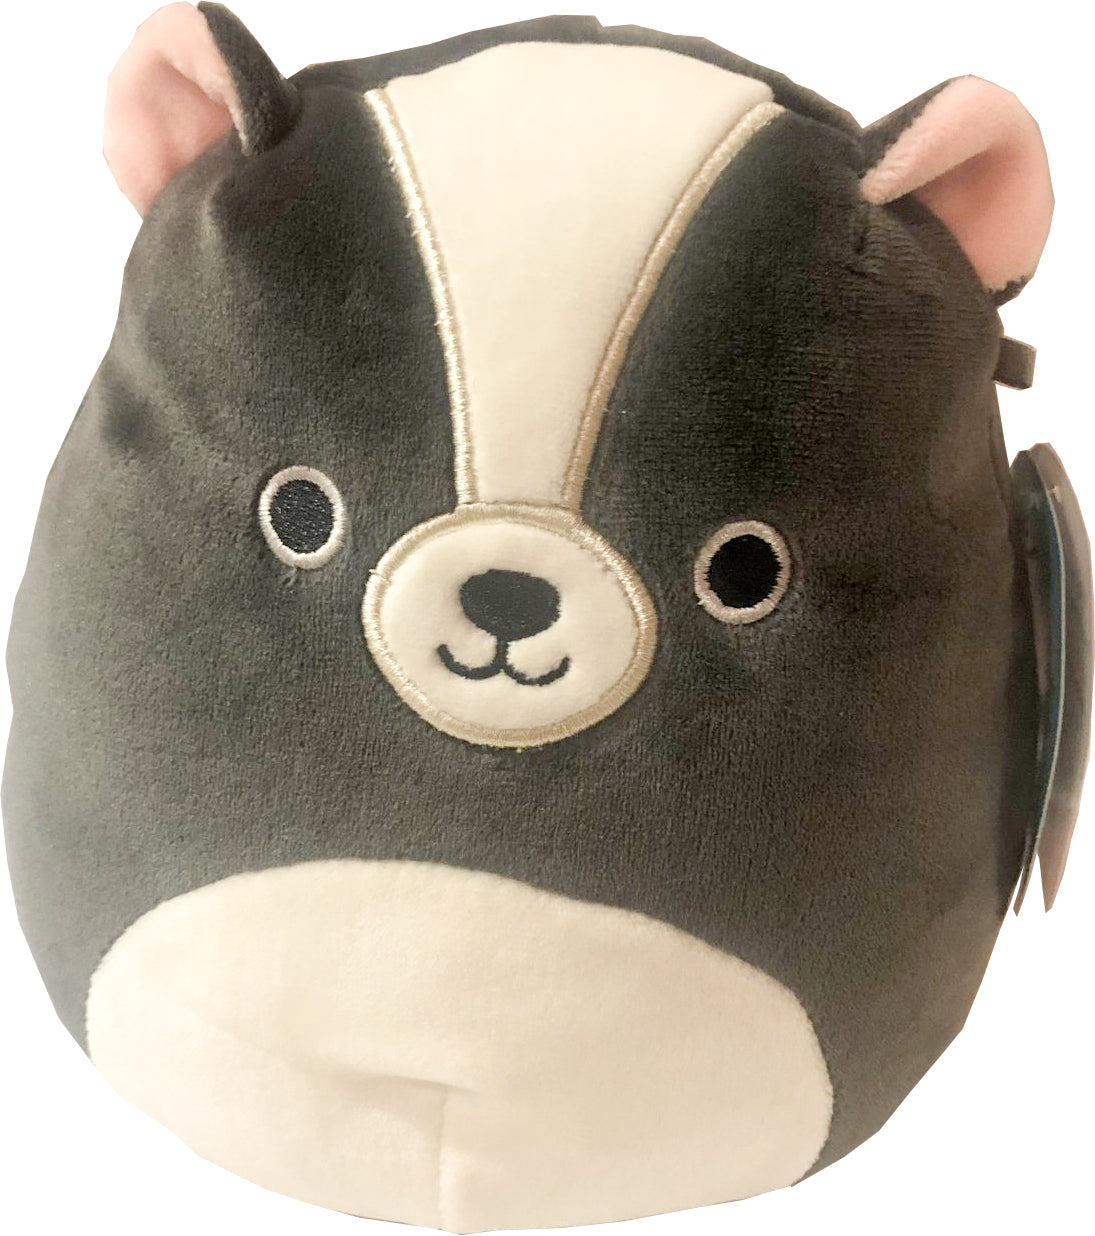 "Squishmallows - 7"" Canadian Skunk"